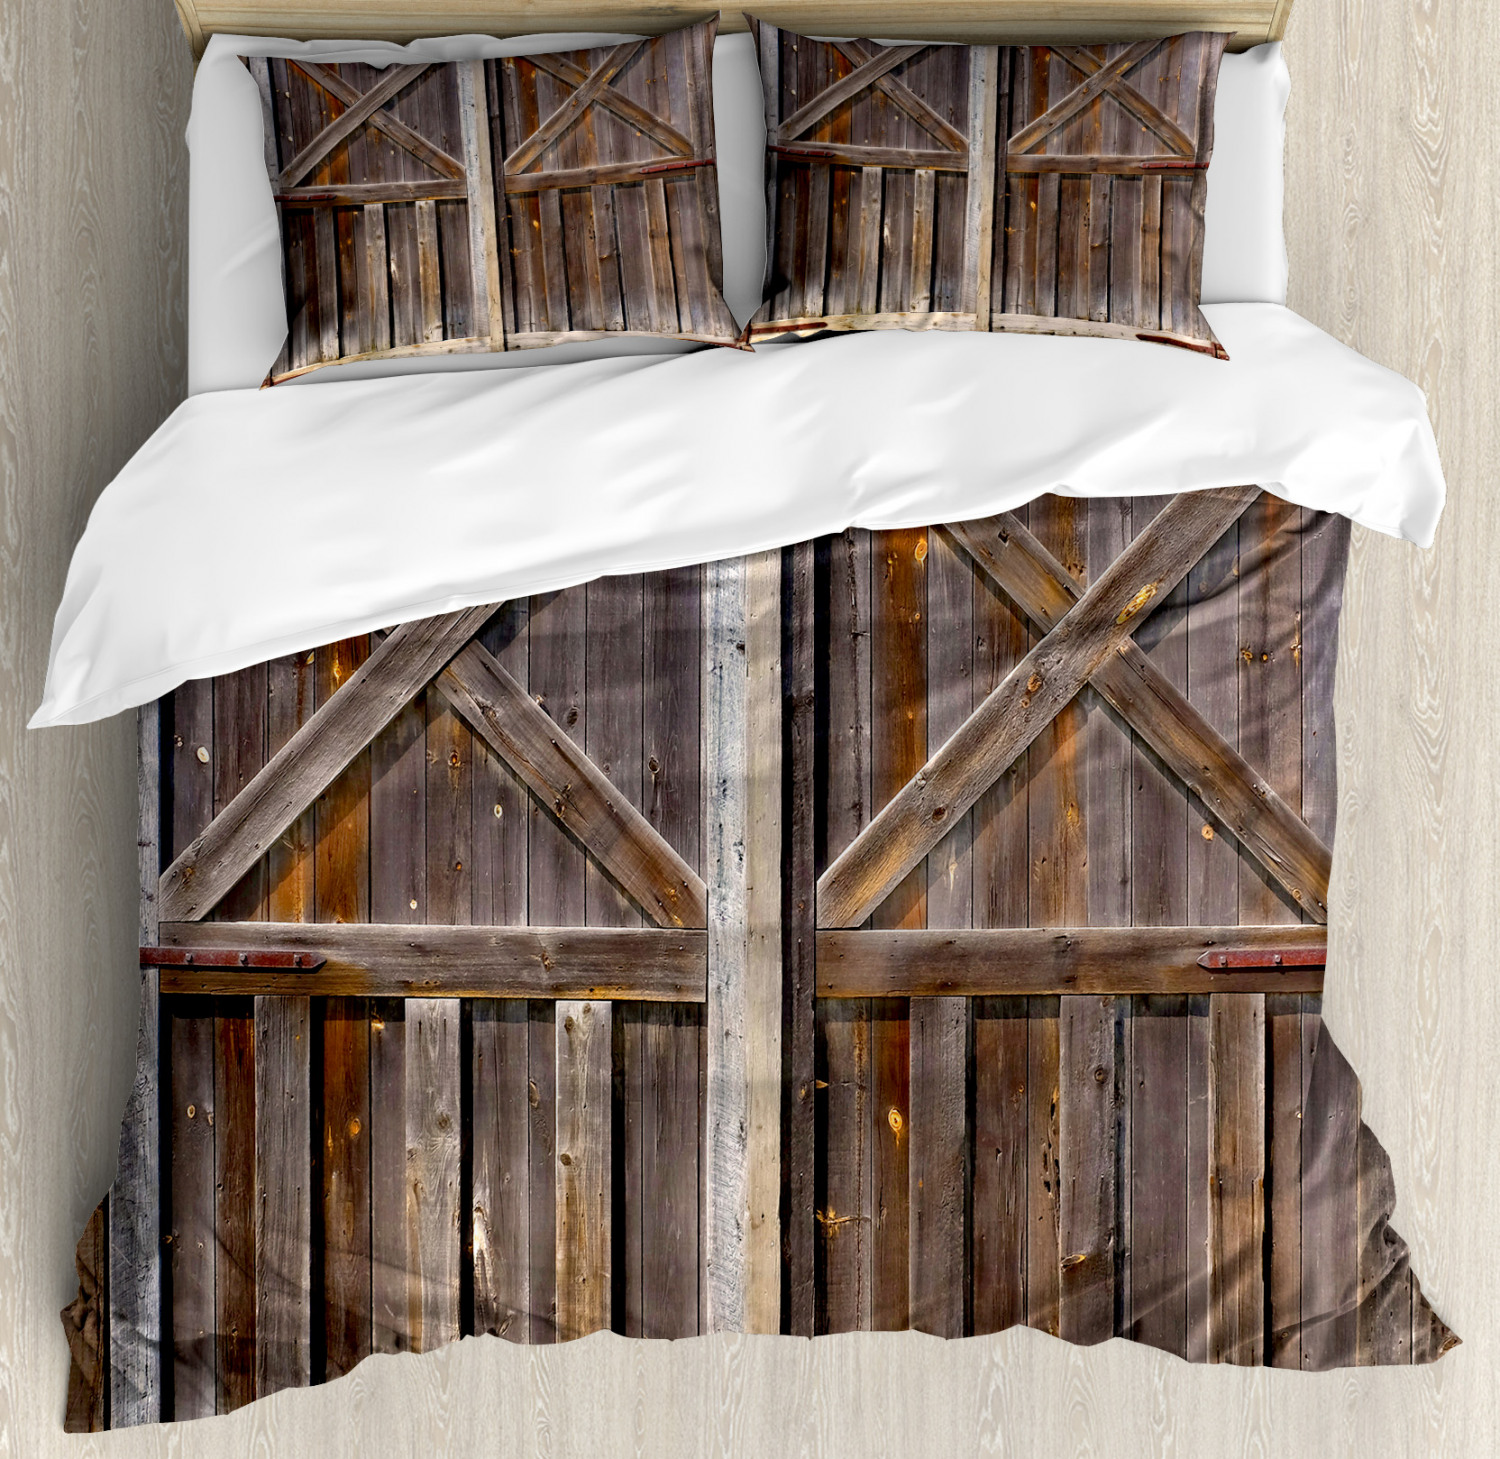 Rustic Duvet Cover Set with Pillow Shams Old Wooden Warehouse Print